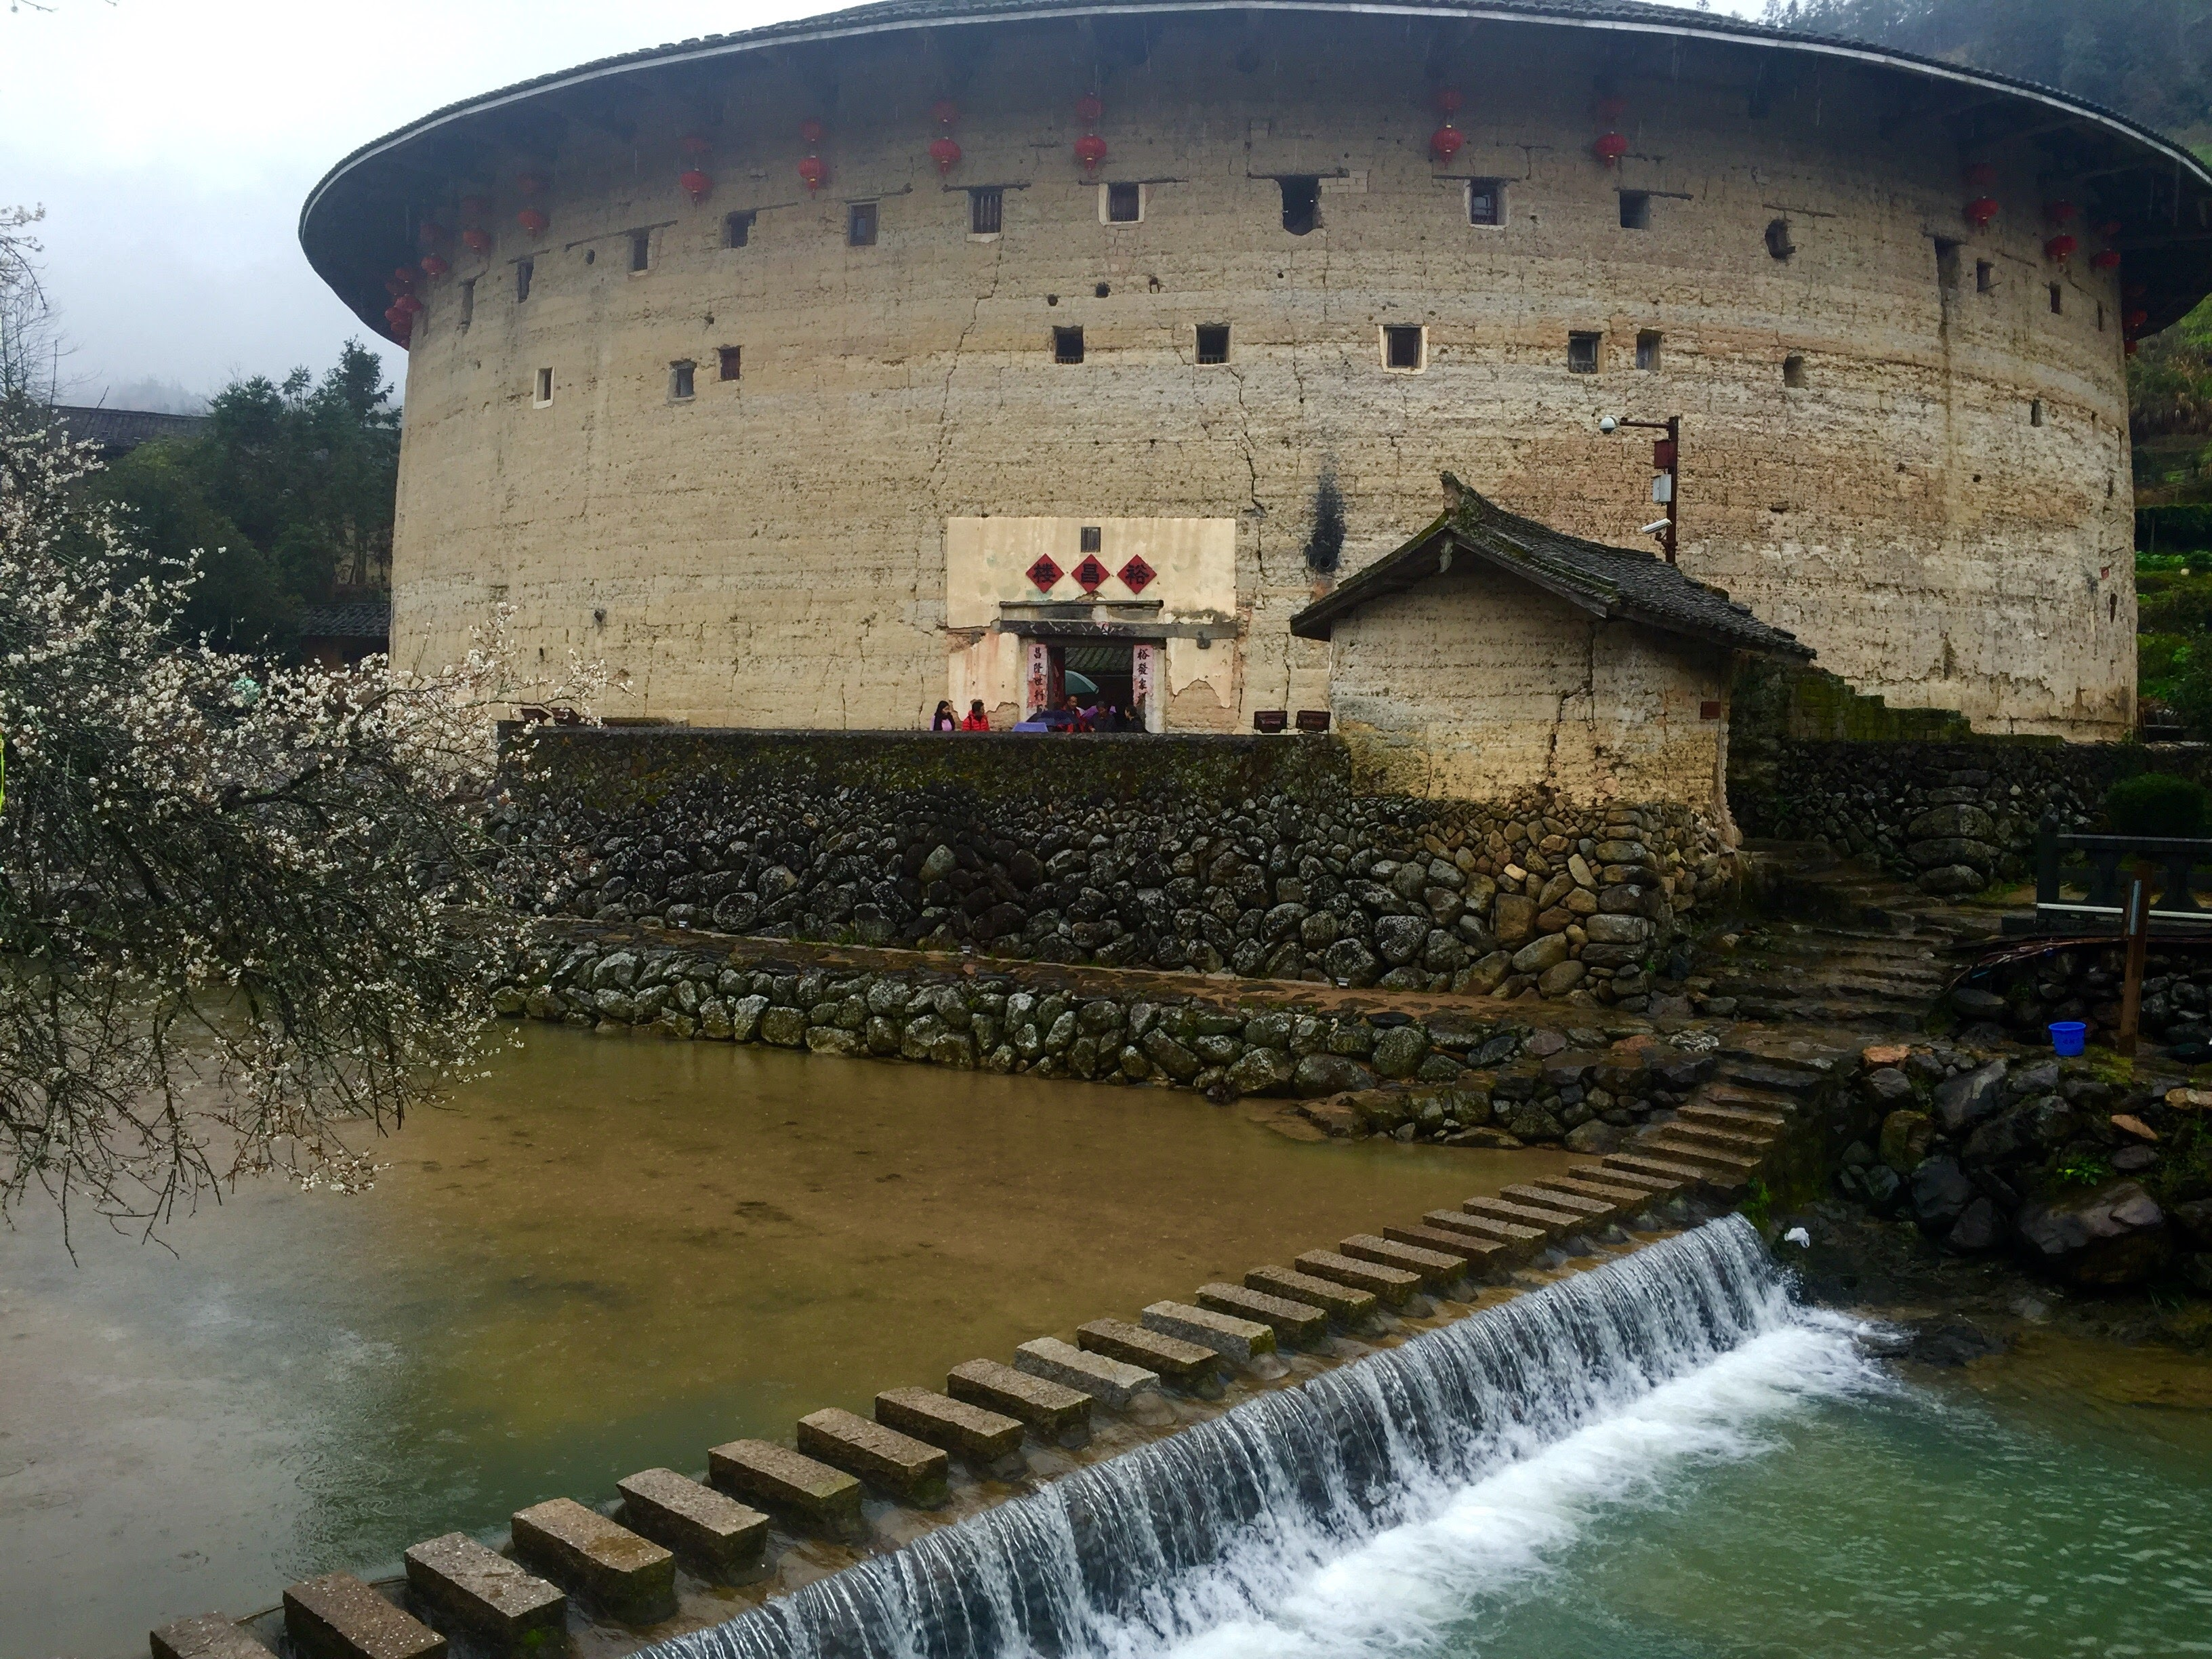 China earthen houses (tulou)